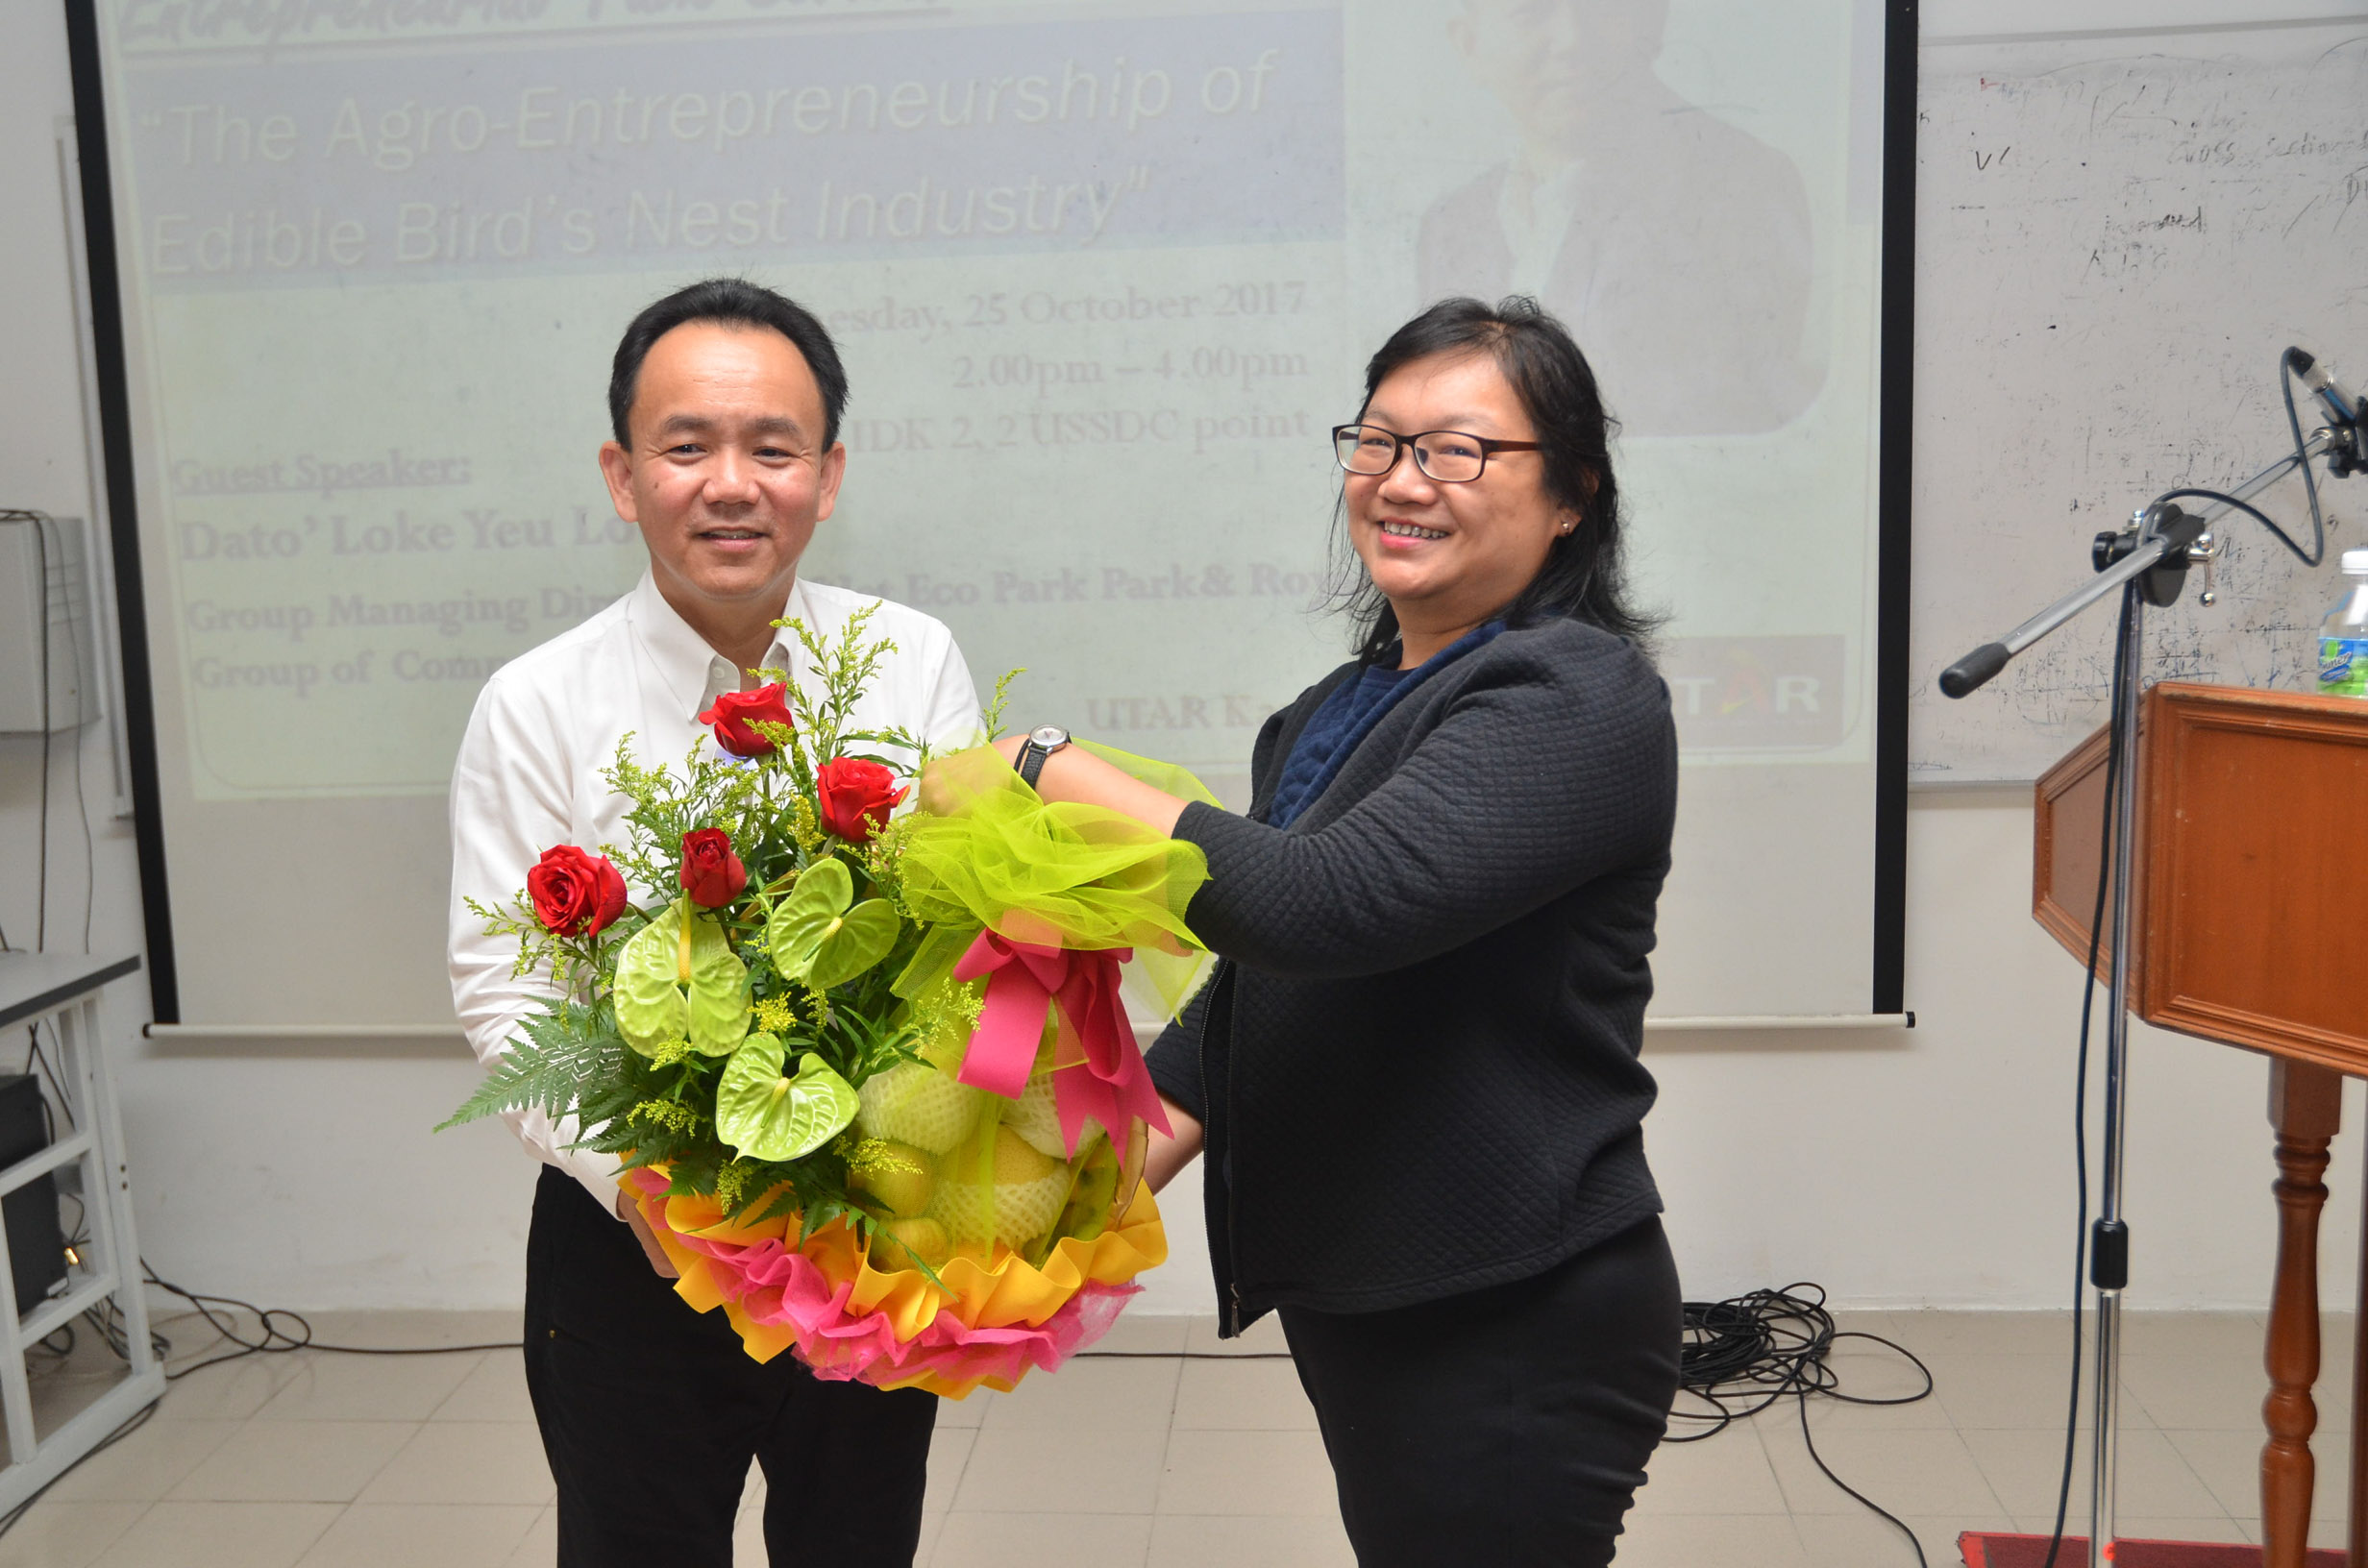 Dr Au Yong (right) presenting a token of appreciation to Dato' Loke